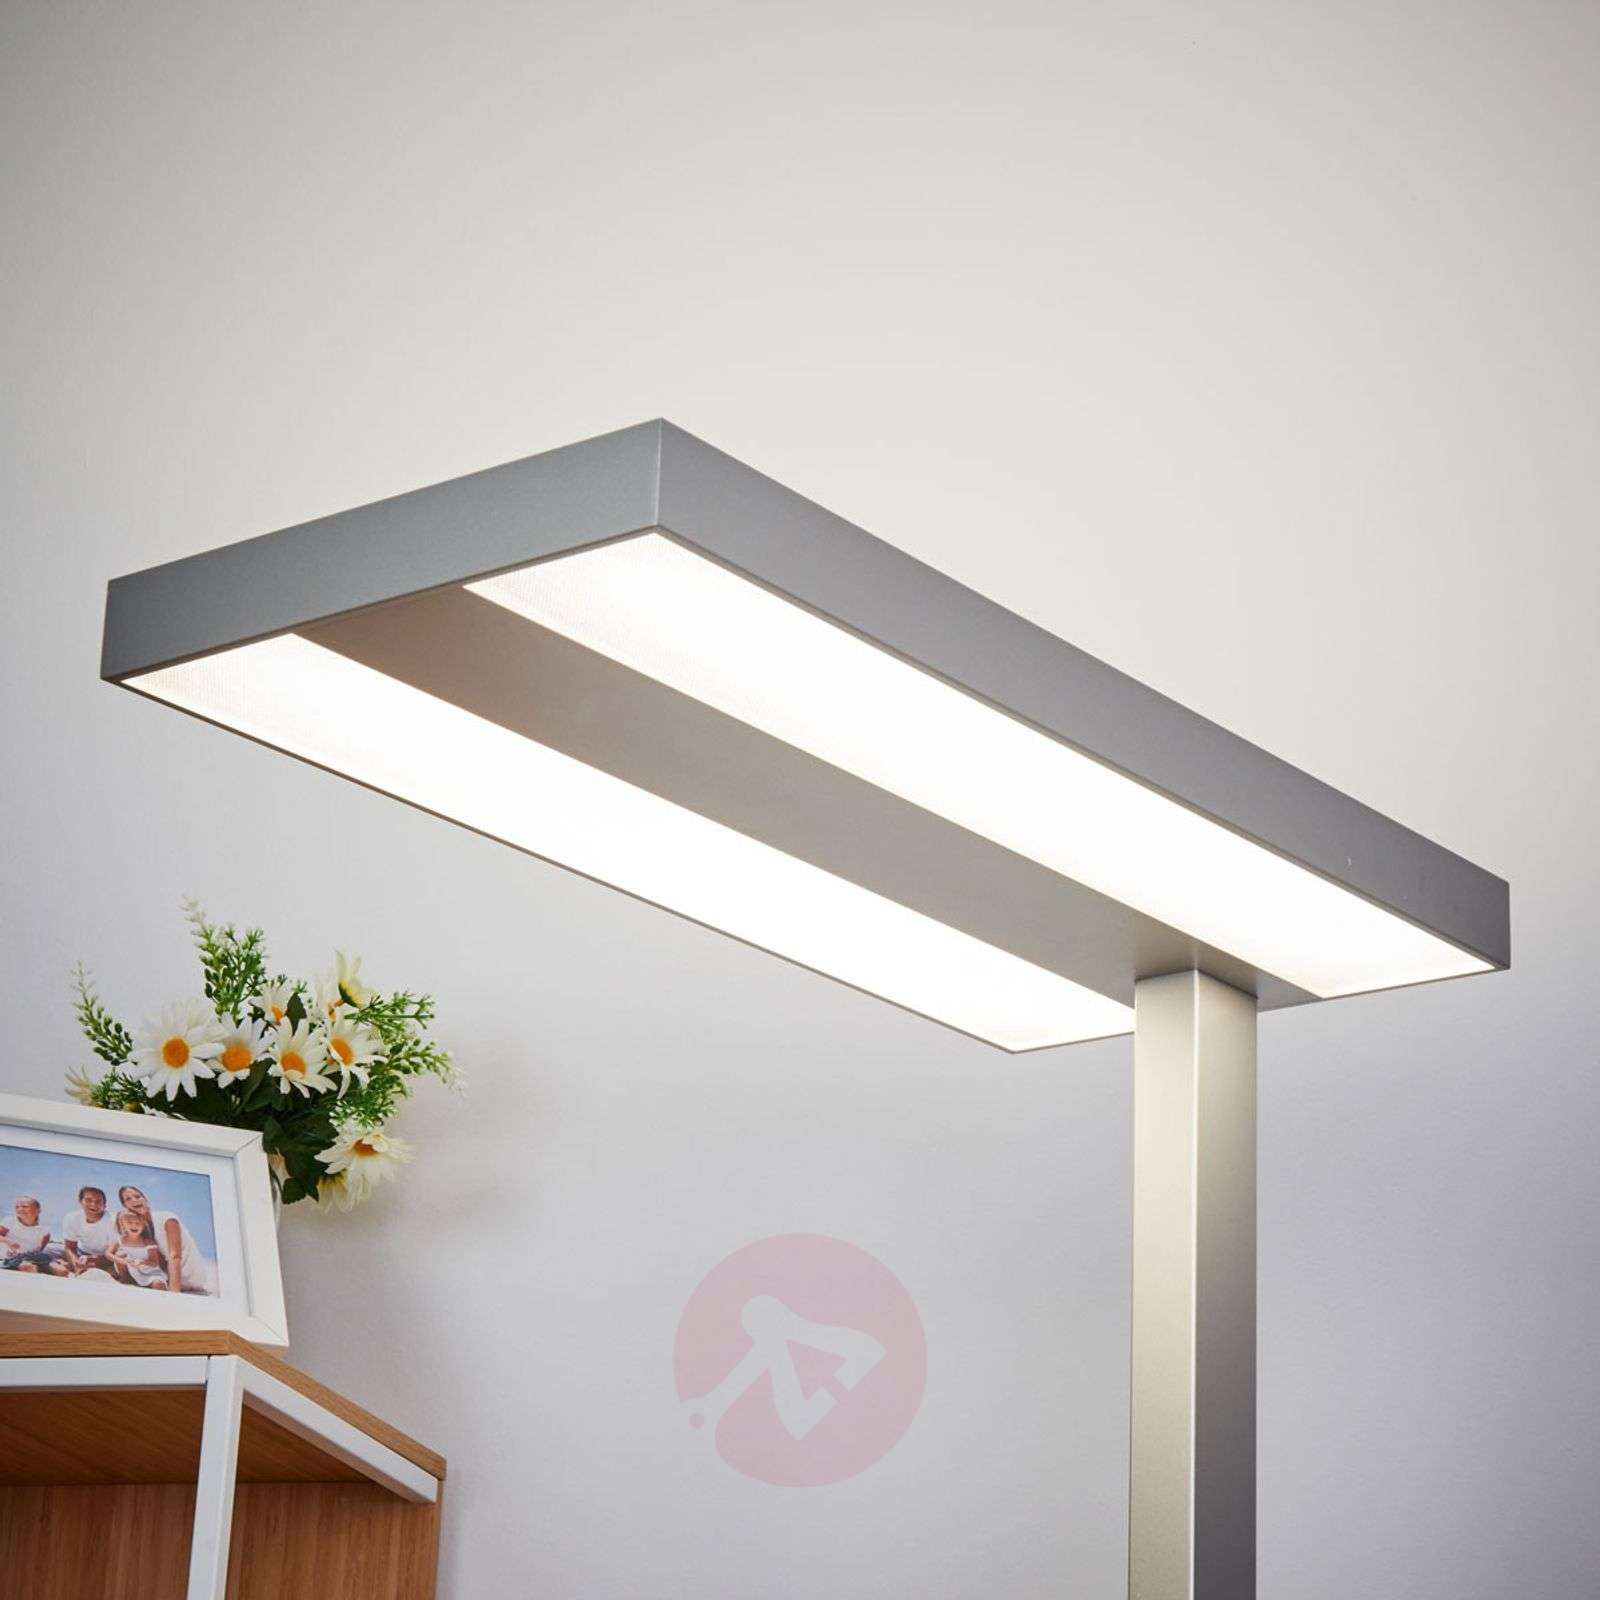 Delicieux ... Dimmable LED Office Floor Lamp Logan 4,000 K 9968003 02 ...